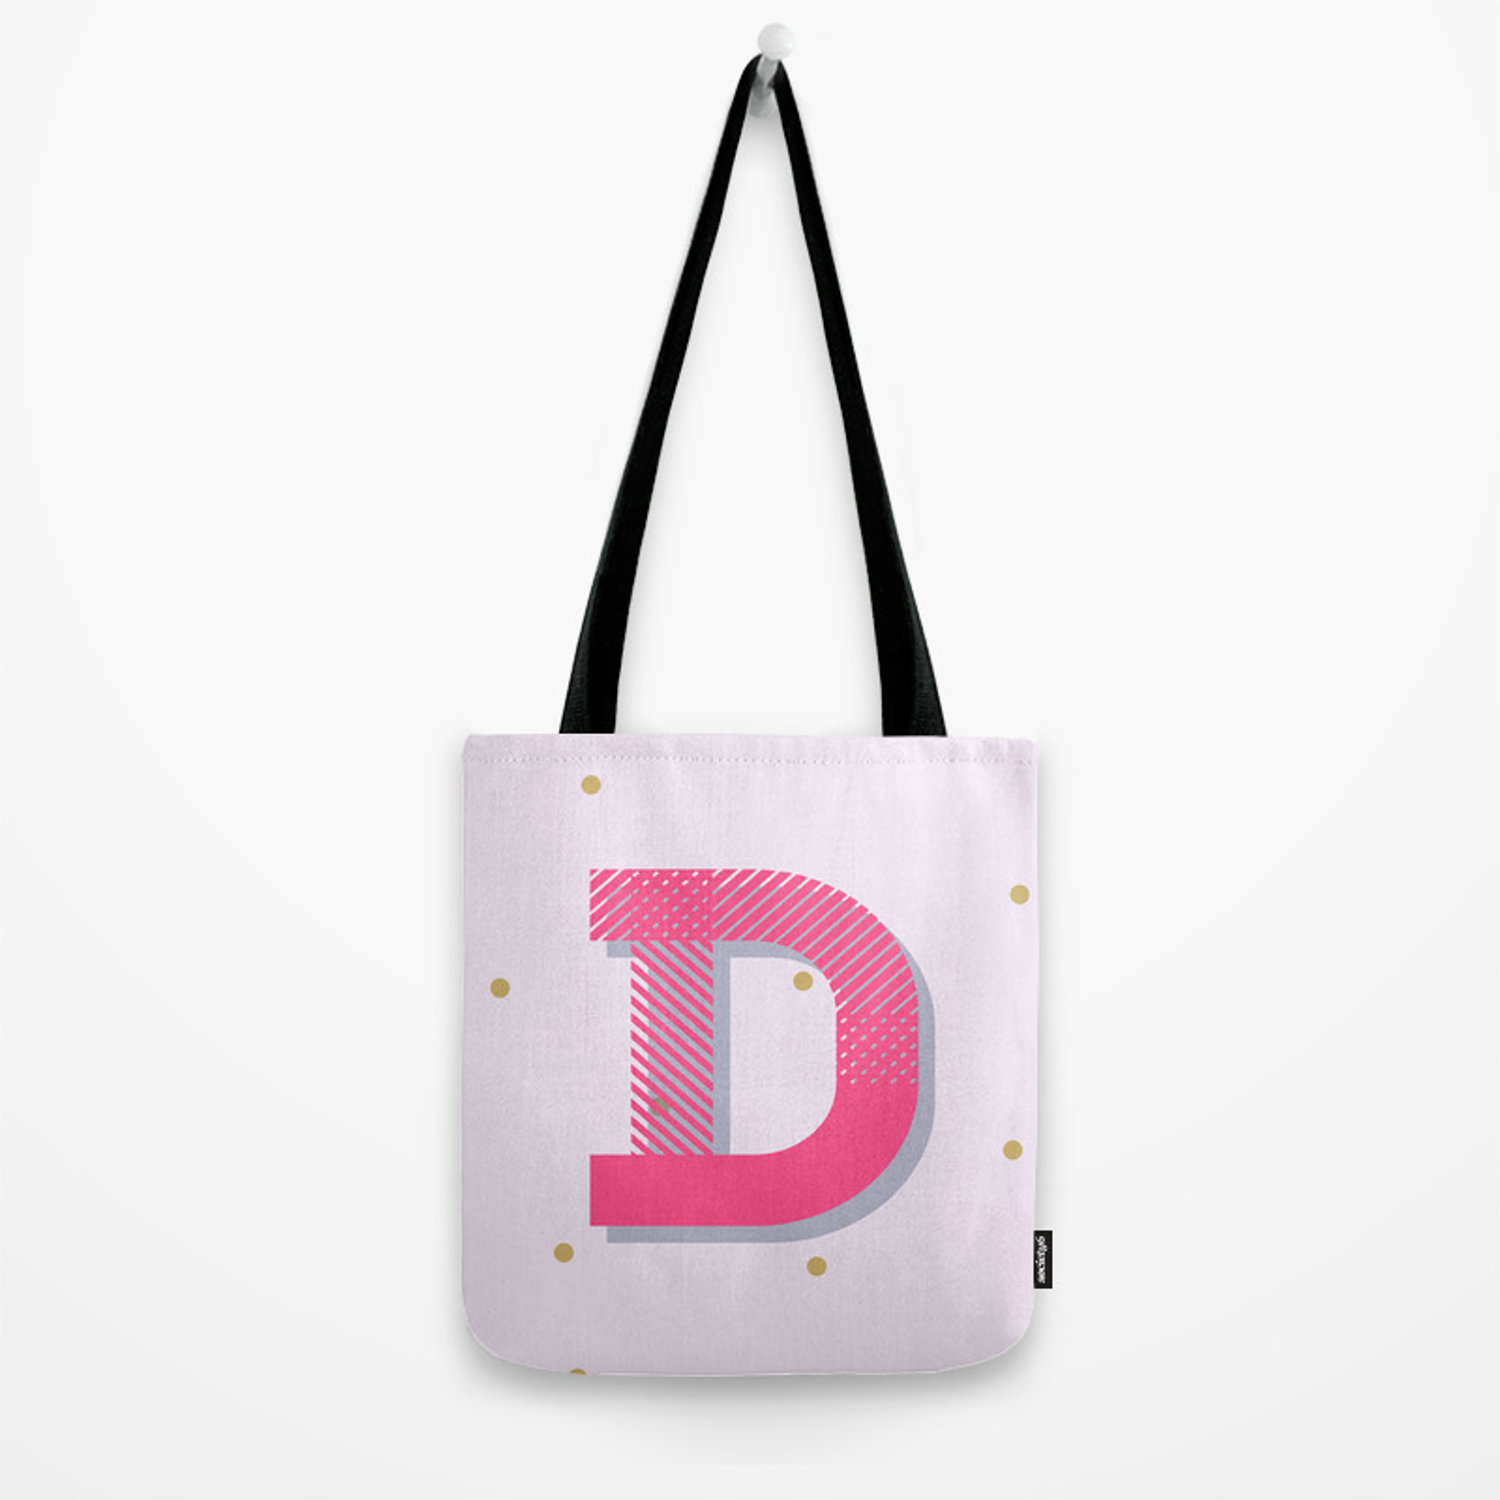 Delightful Tote Bag By Colorandtheory